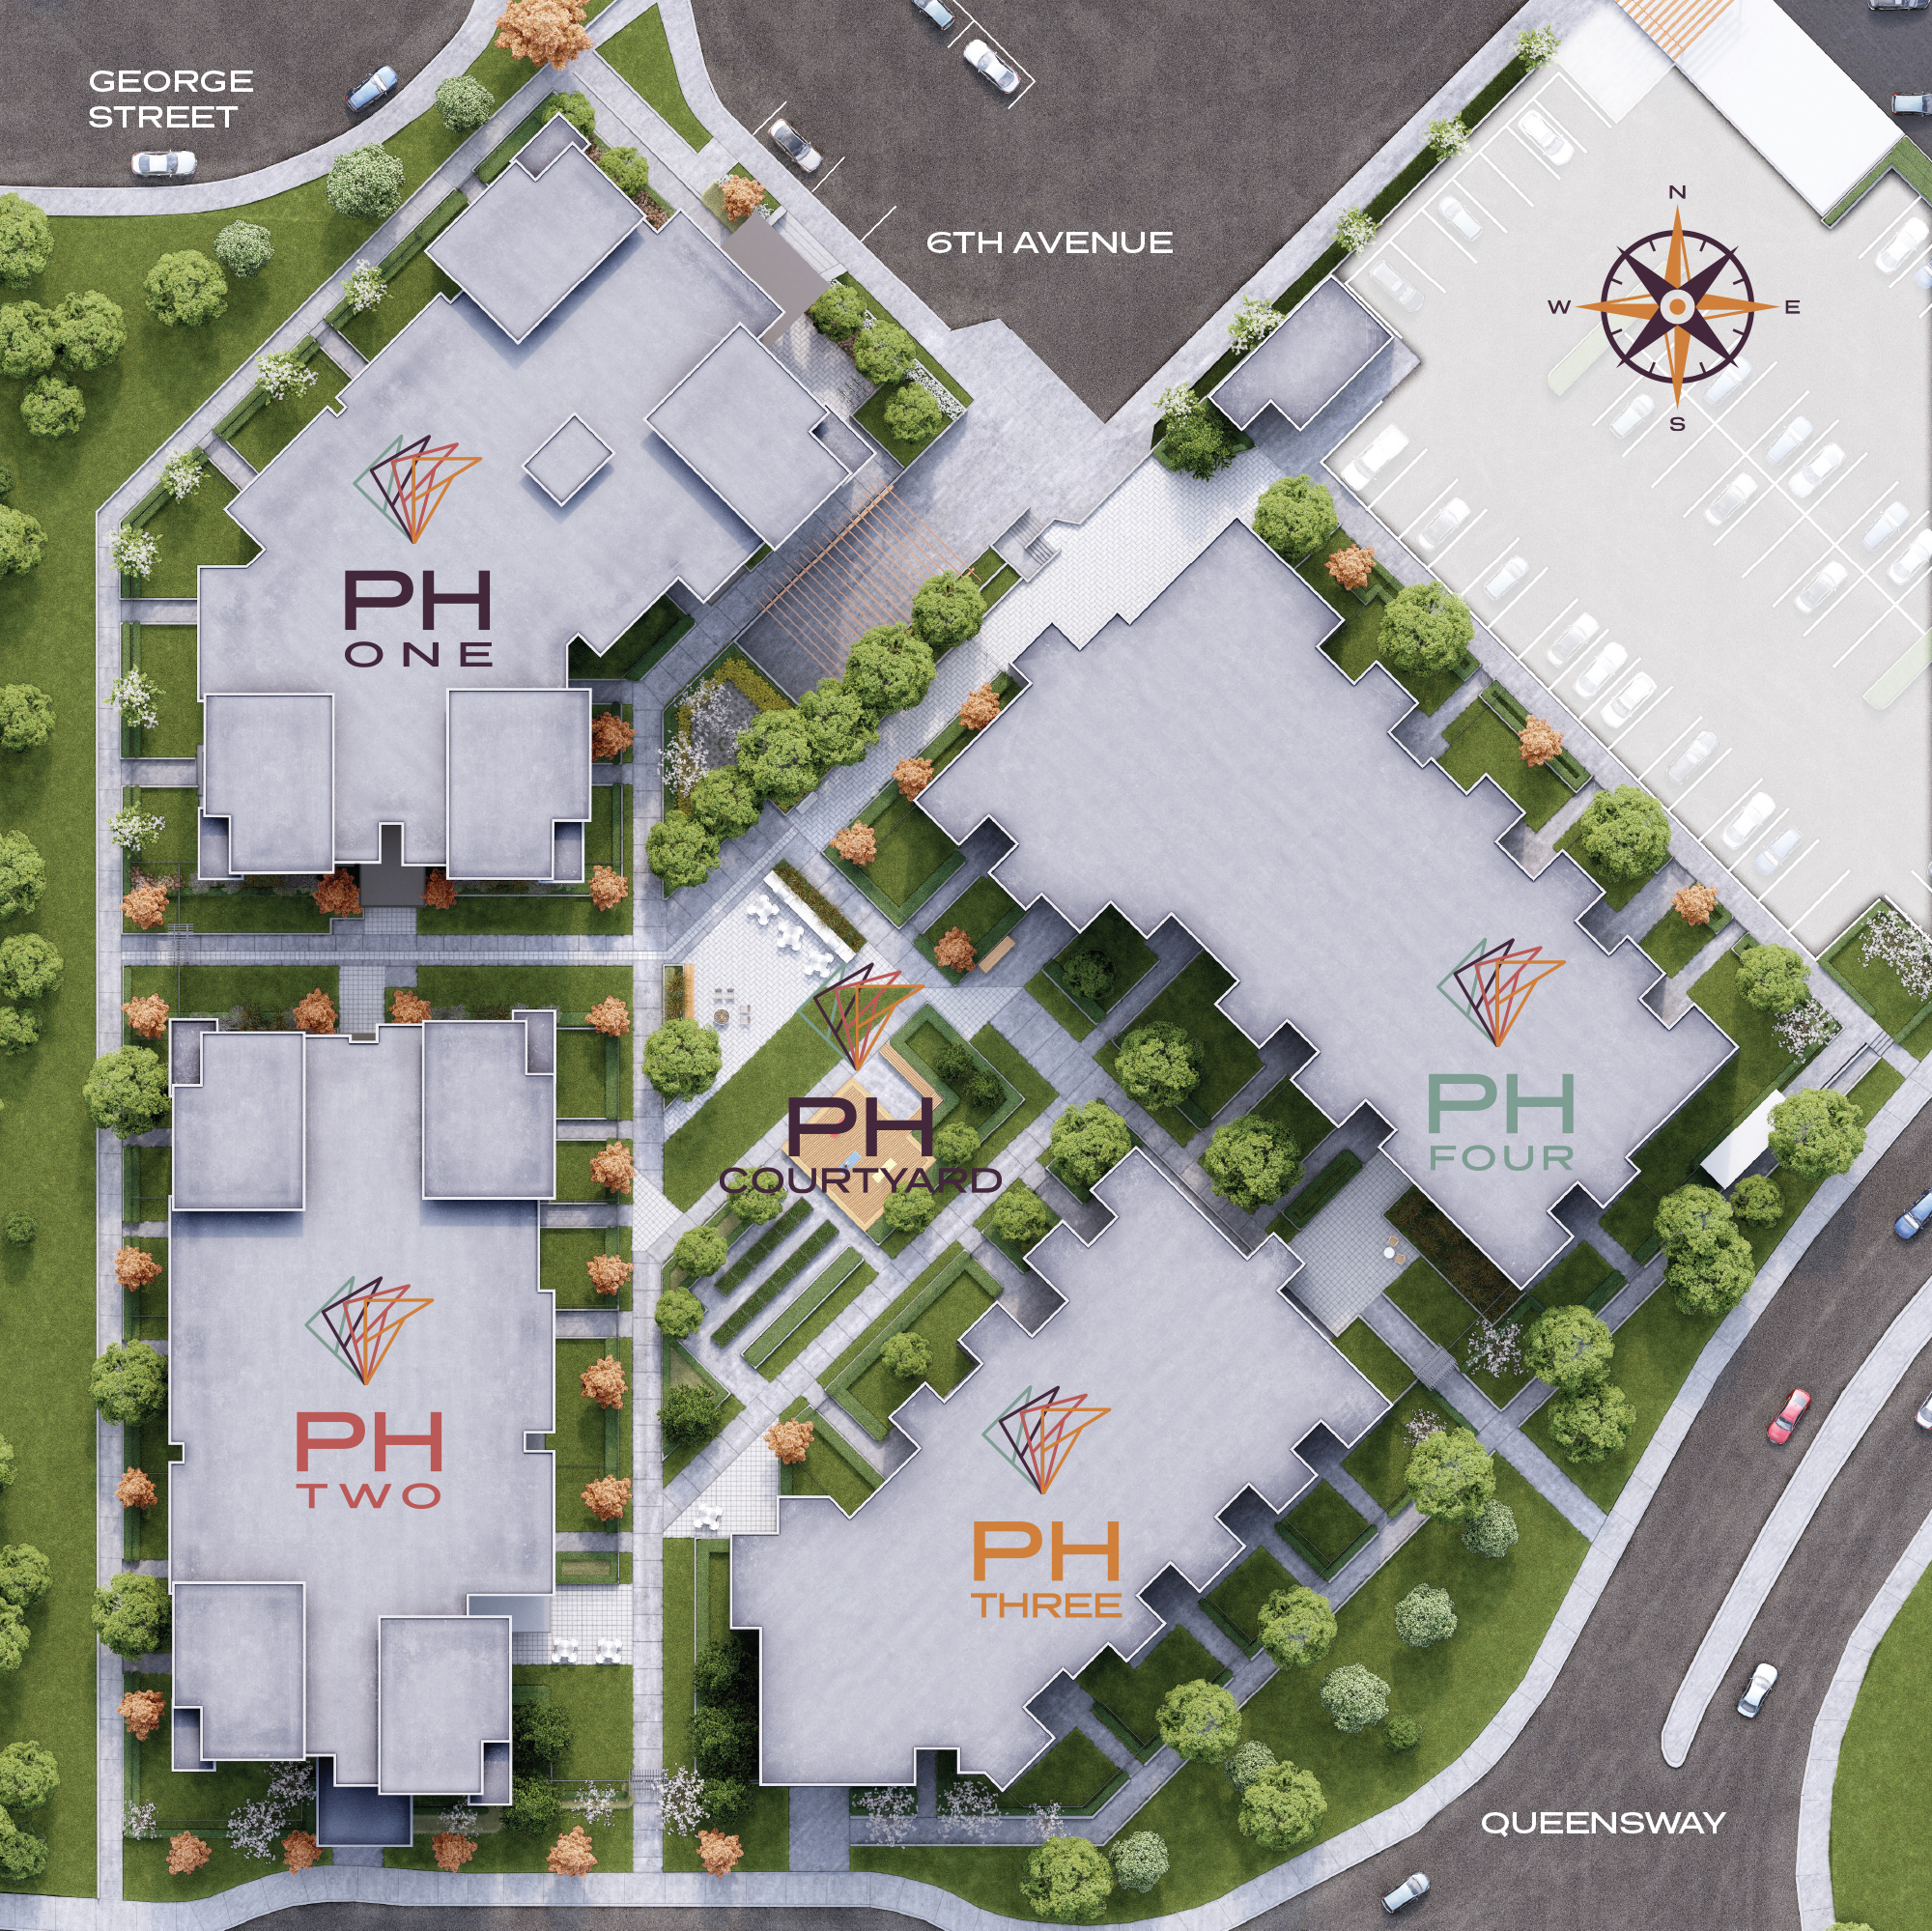 Park House Prince George site plan map